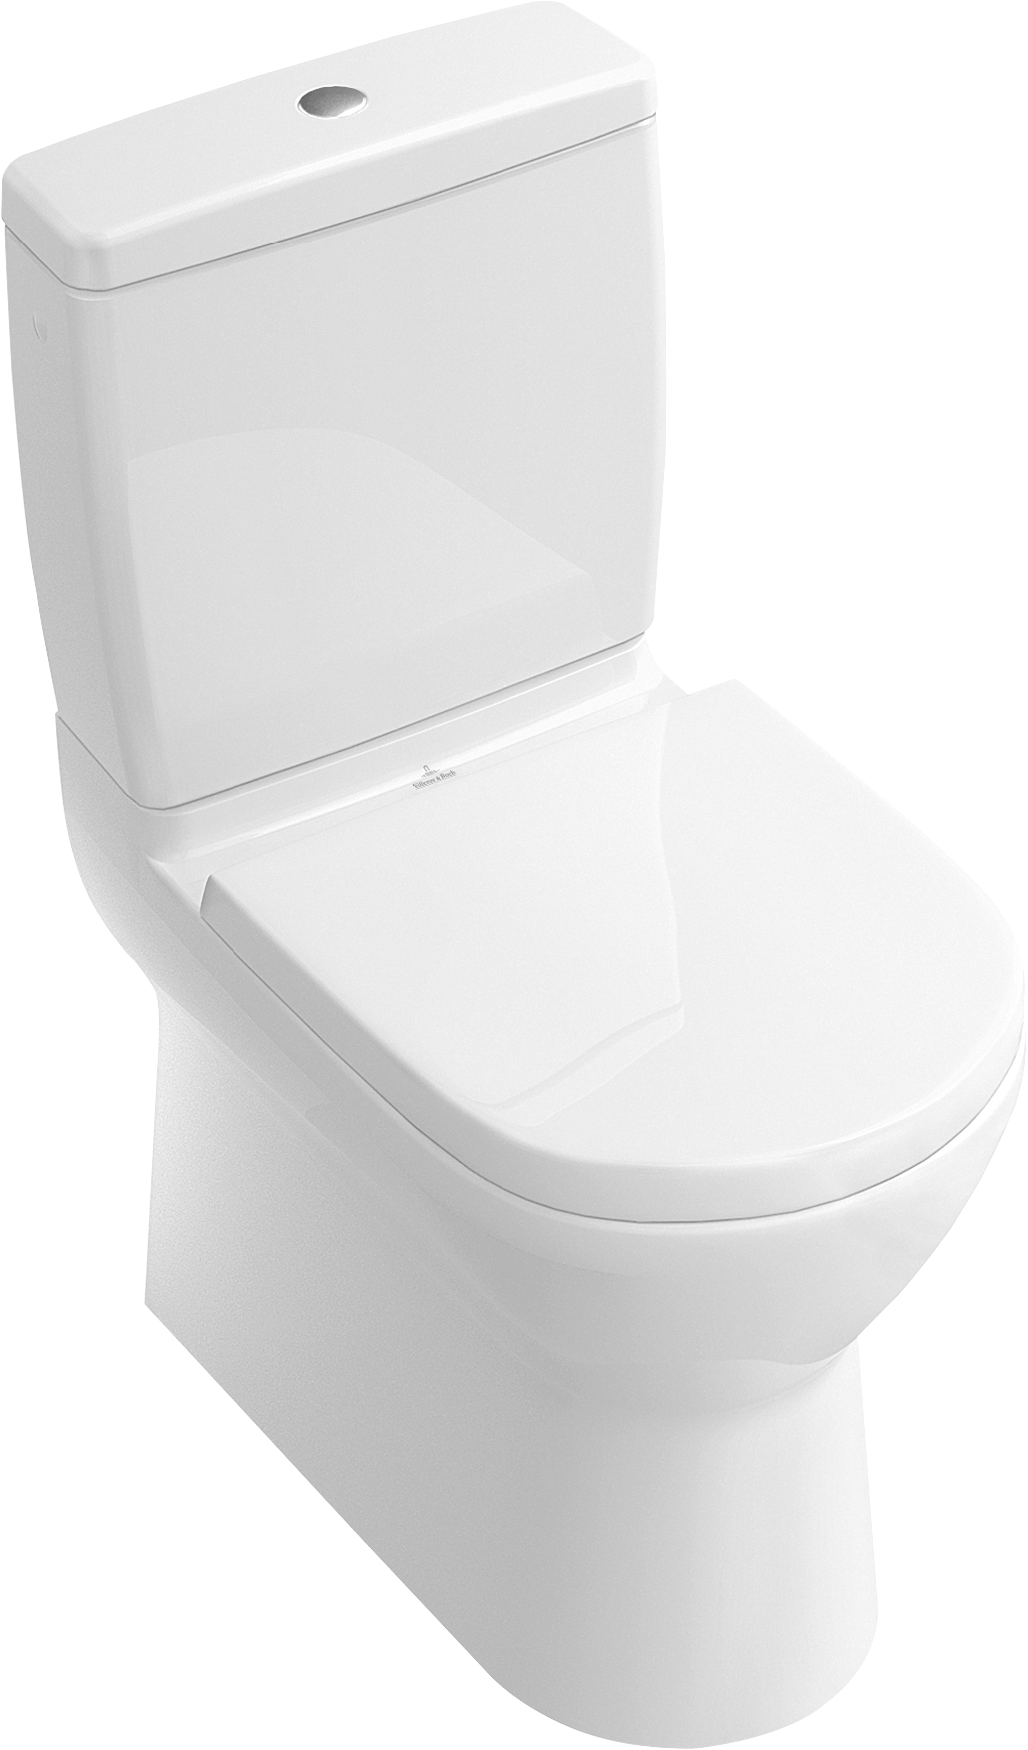 stand wc abgang senkrecht montage affordable stand wc mit senkrechtem abgang with stand wc. Black Bedroom Furniture Sets. Home Design Ideas